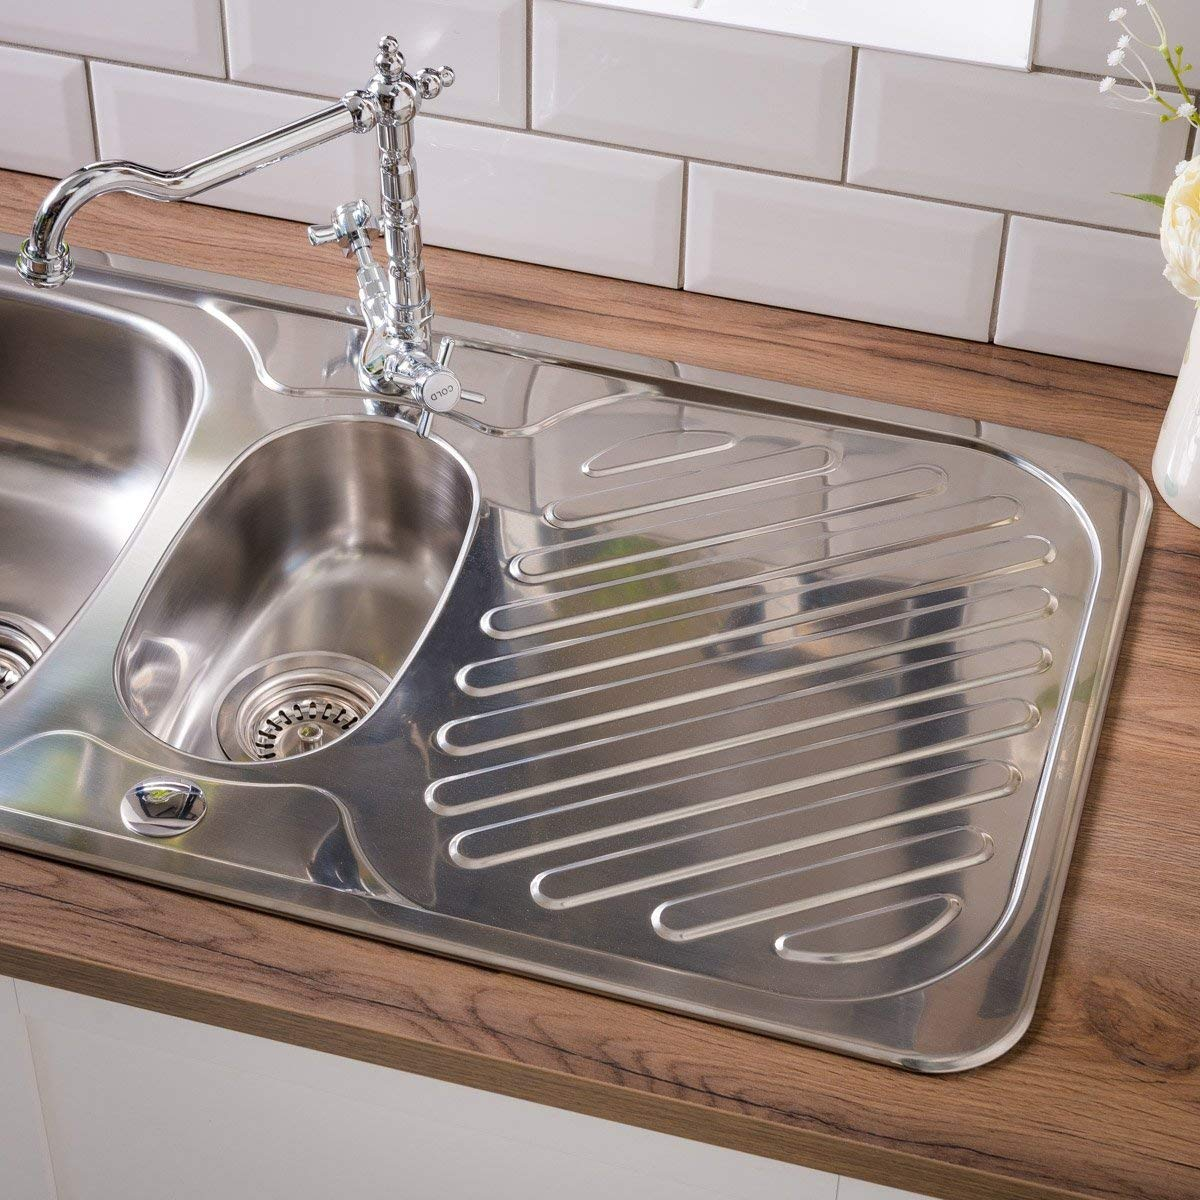 Astracast ruby 965 x 500mm stainless steel 1 5 bowl kitchen sink wastes amazon co uk diy tools